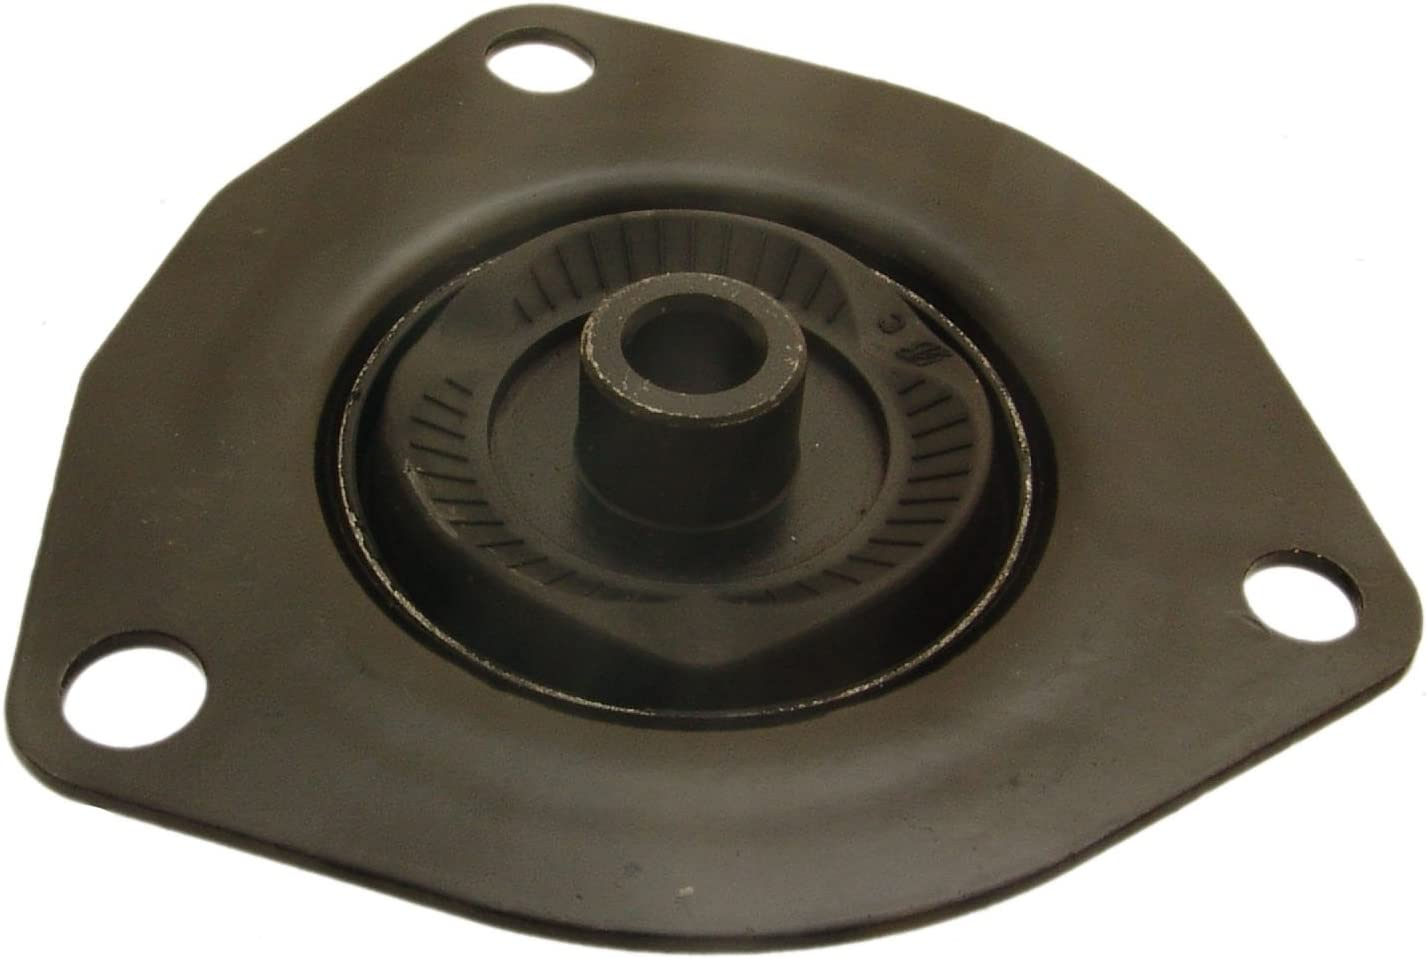 543204U010 - OFFer Front Shock Free shipping Absorber Nissan For Support Febest